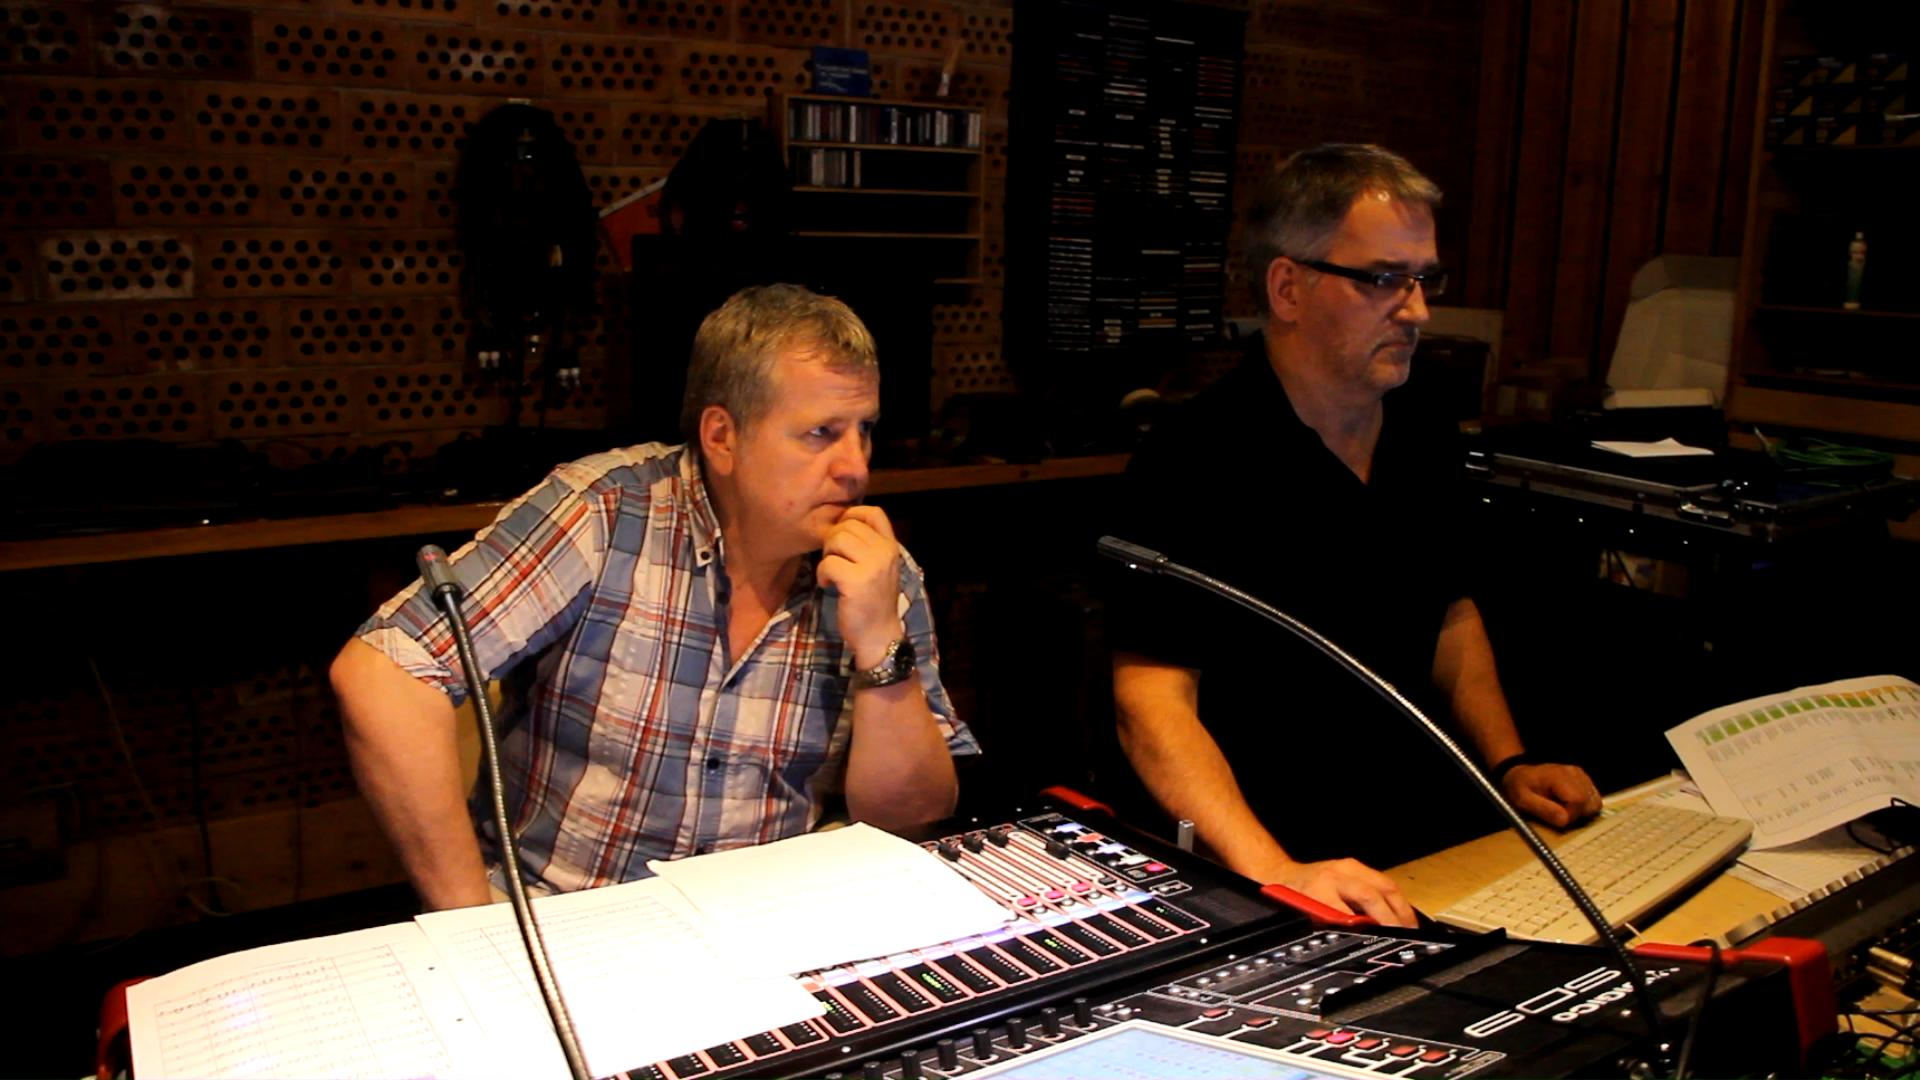 Joachim Moser und Georg Hrauda im Studio in Gettsdorf, Album 2015